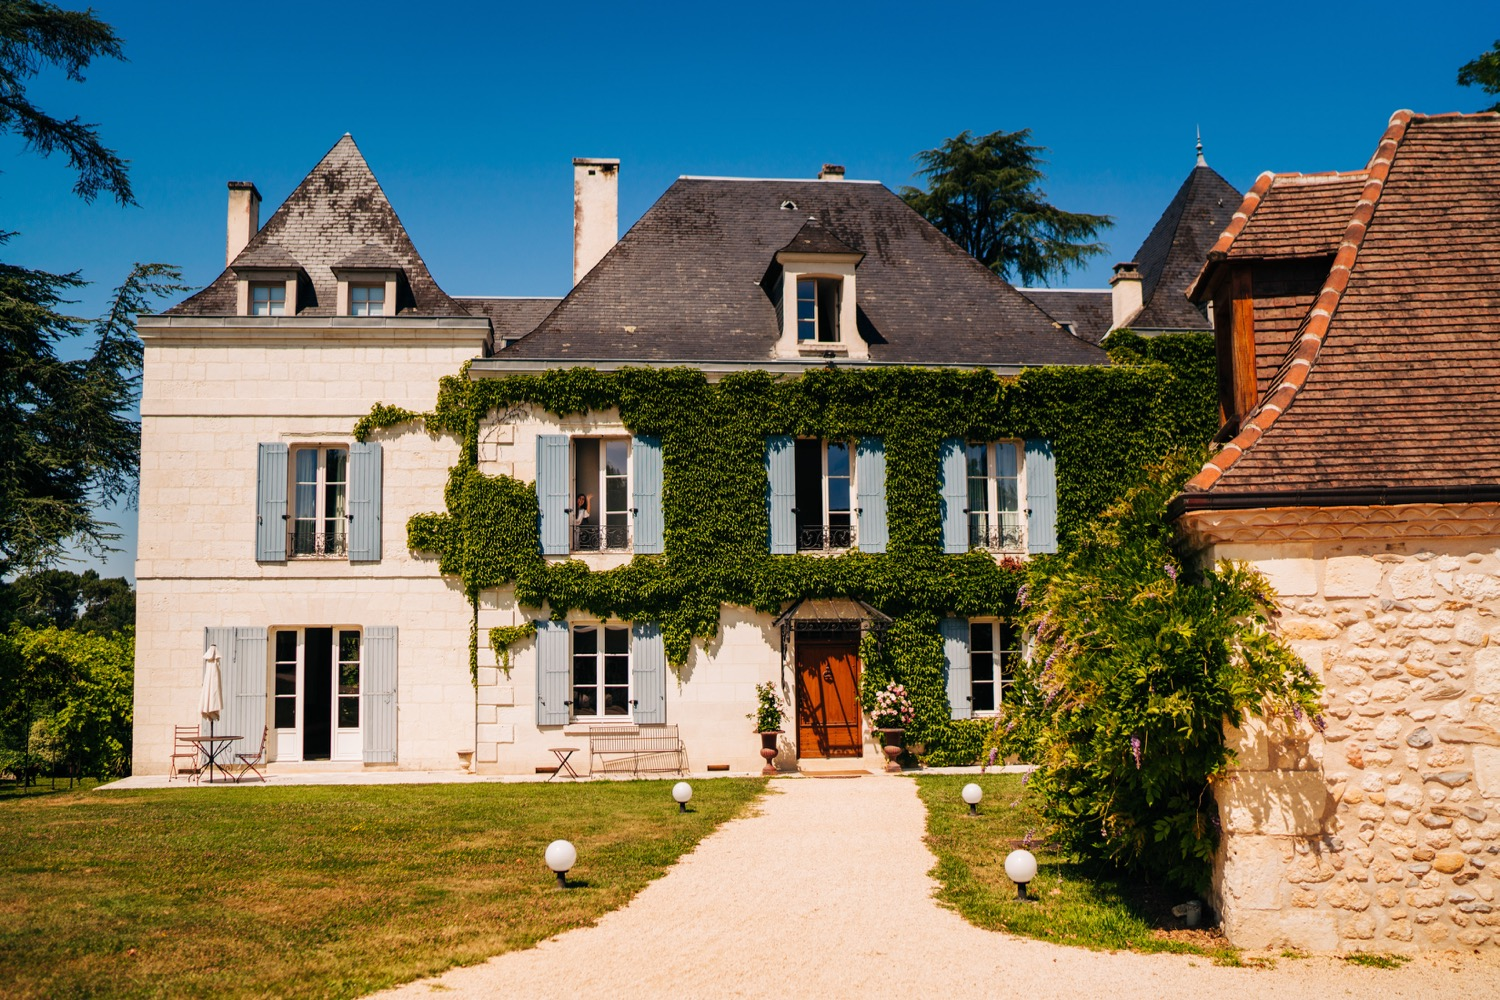 A beautiful mansion covered in vines at Domaine La Fauconnie wedding venue in South France.